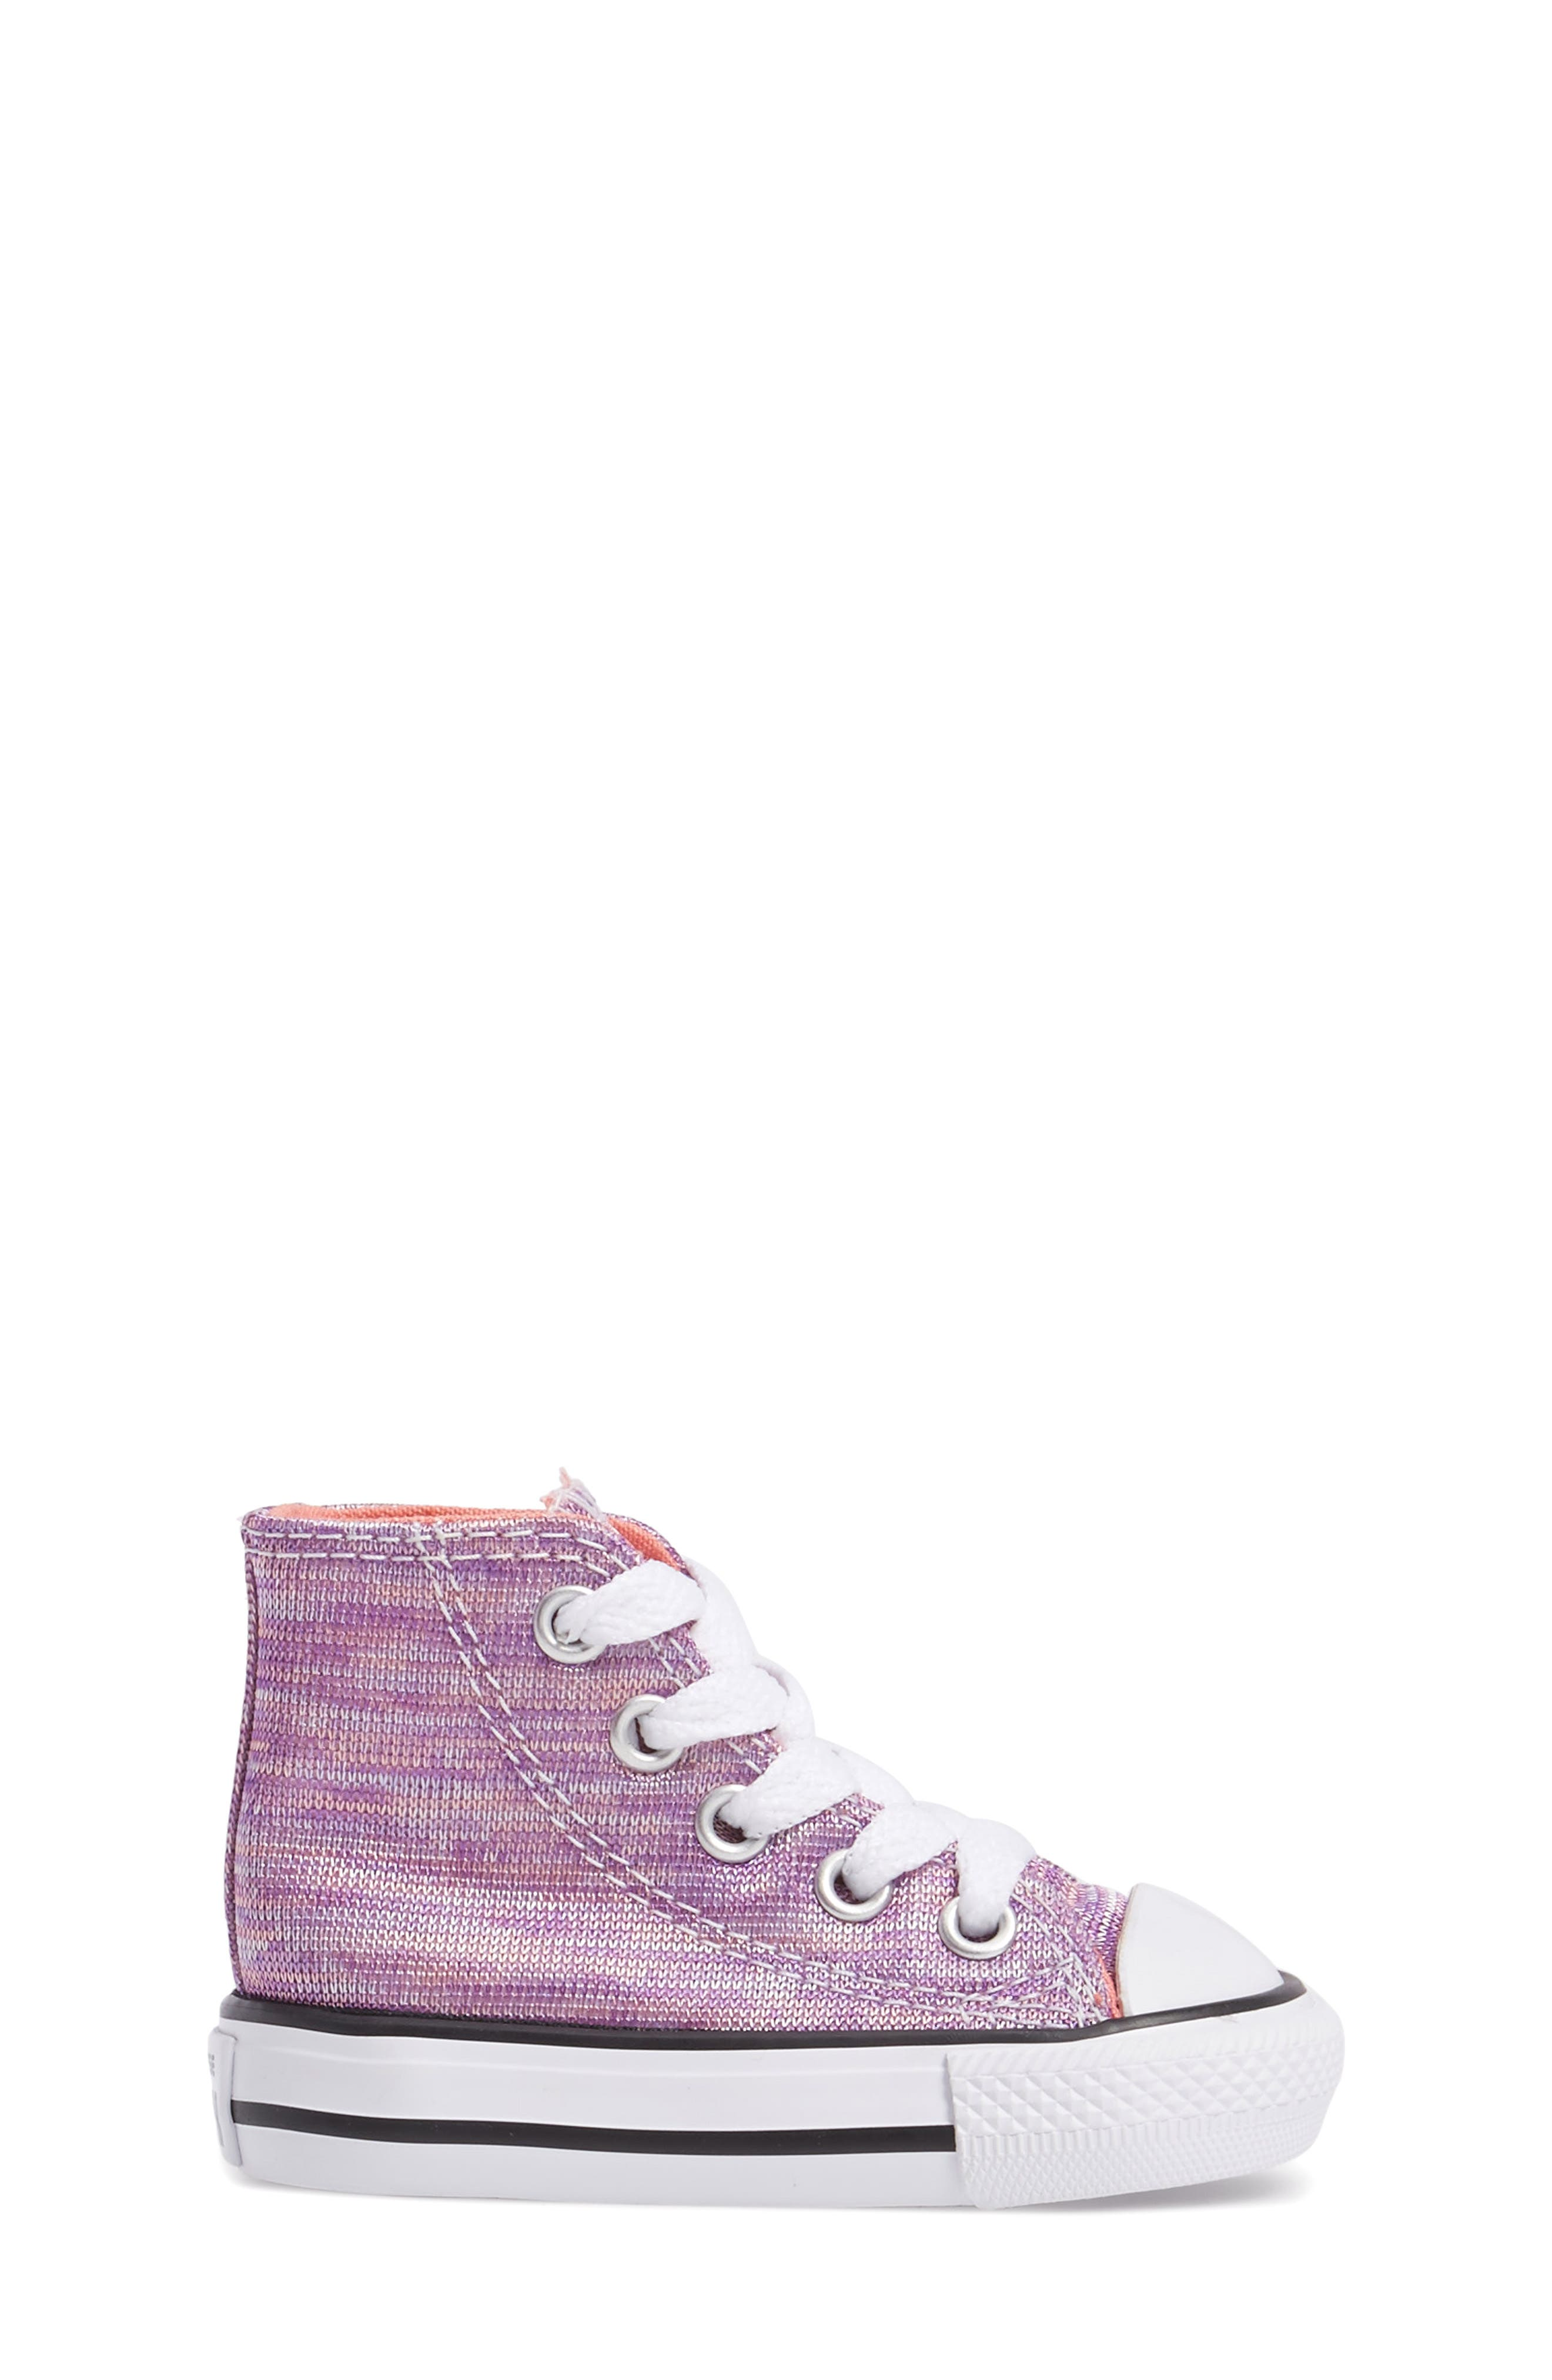 Chuck Taylor<sup>®</sup> All Star<sup>®</sup> Knit High Top Sneaker,                             Alternate thumbnail 3, color,                             504